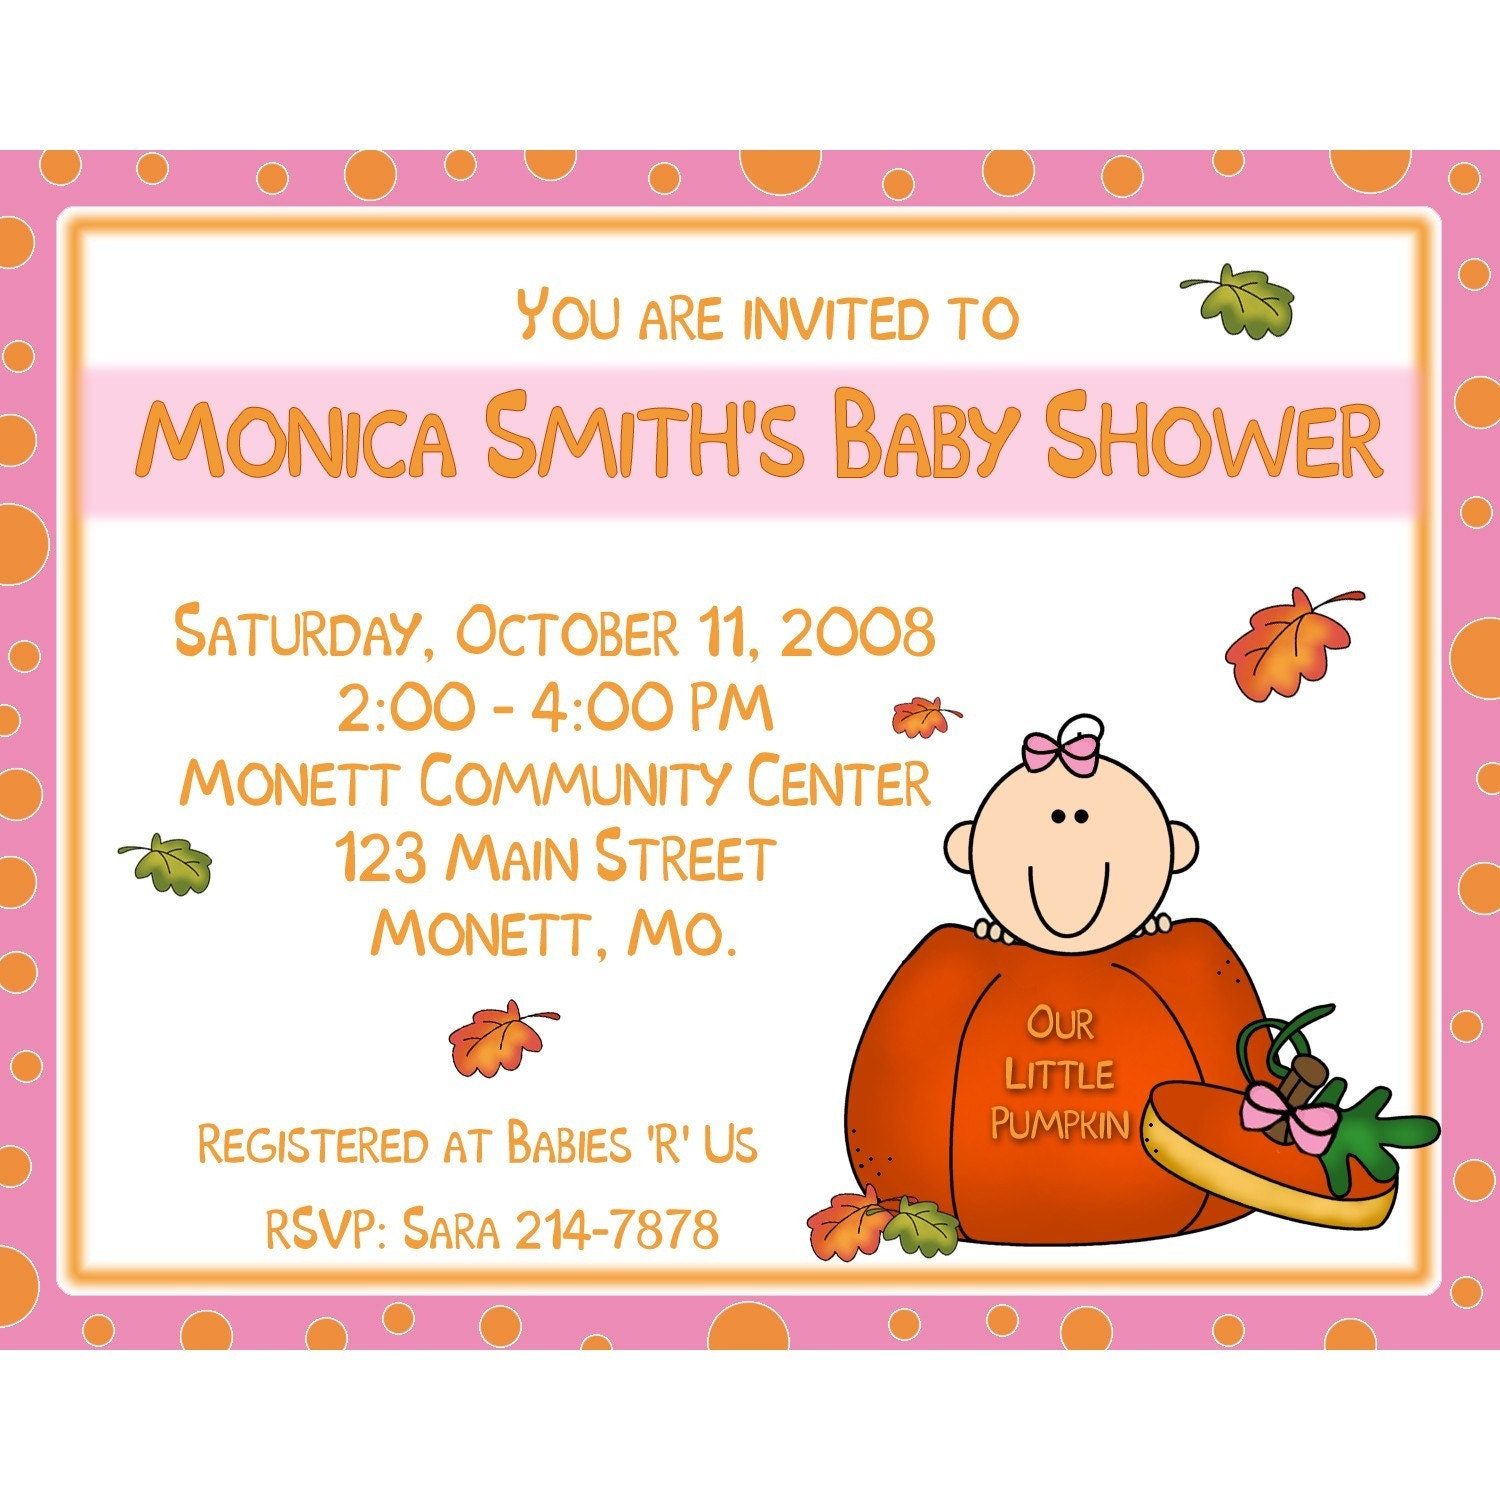 Little Pumpkin Baby Shower Invitations was very inspiring ideas you may choose for invitation ideas